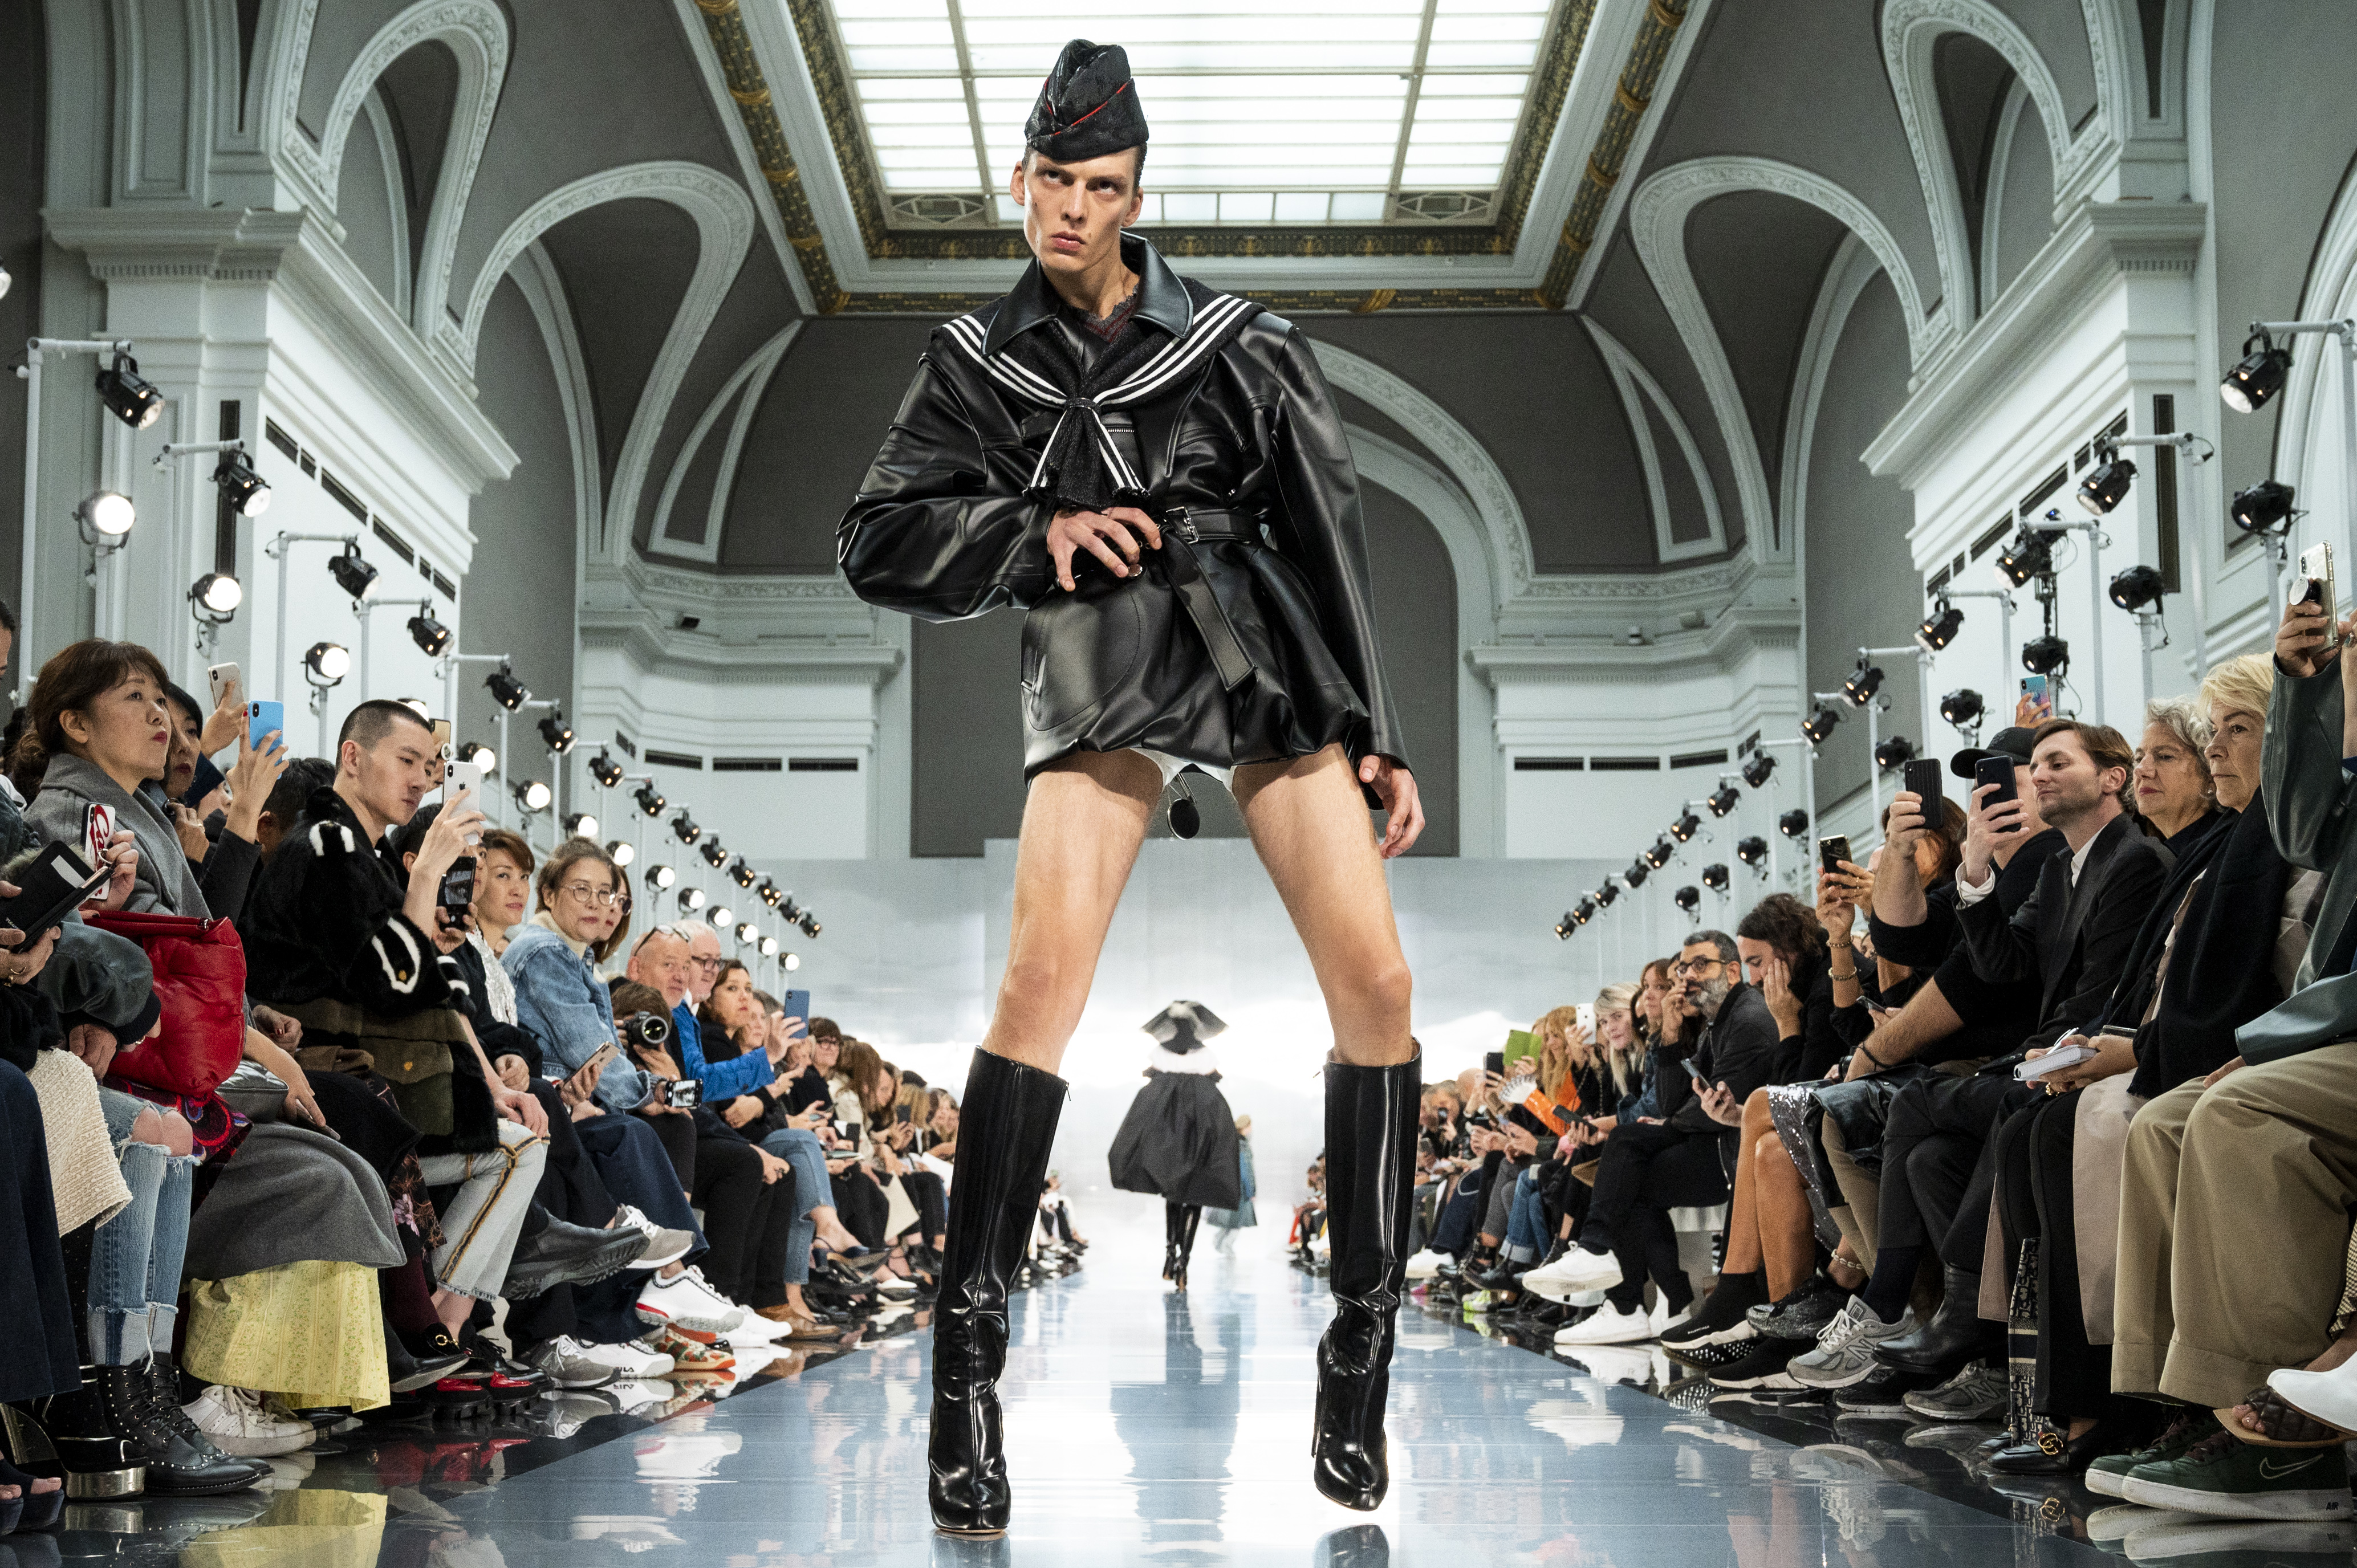 Paris Fashion Week Summer 2020 Highlights and the most